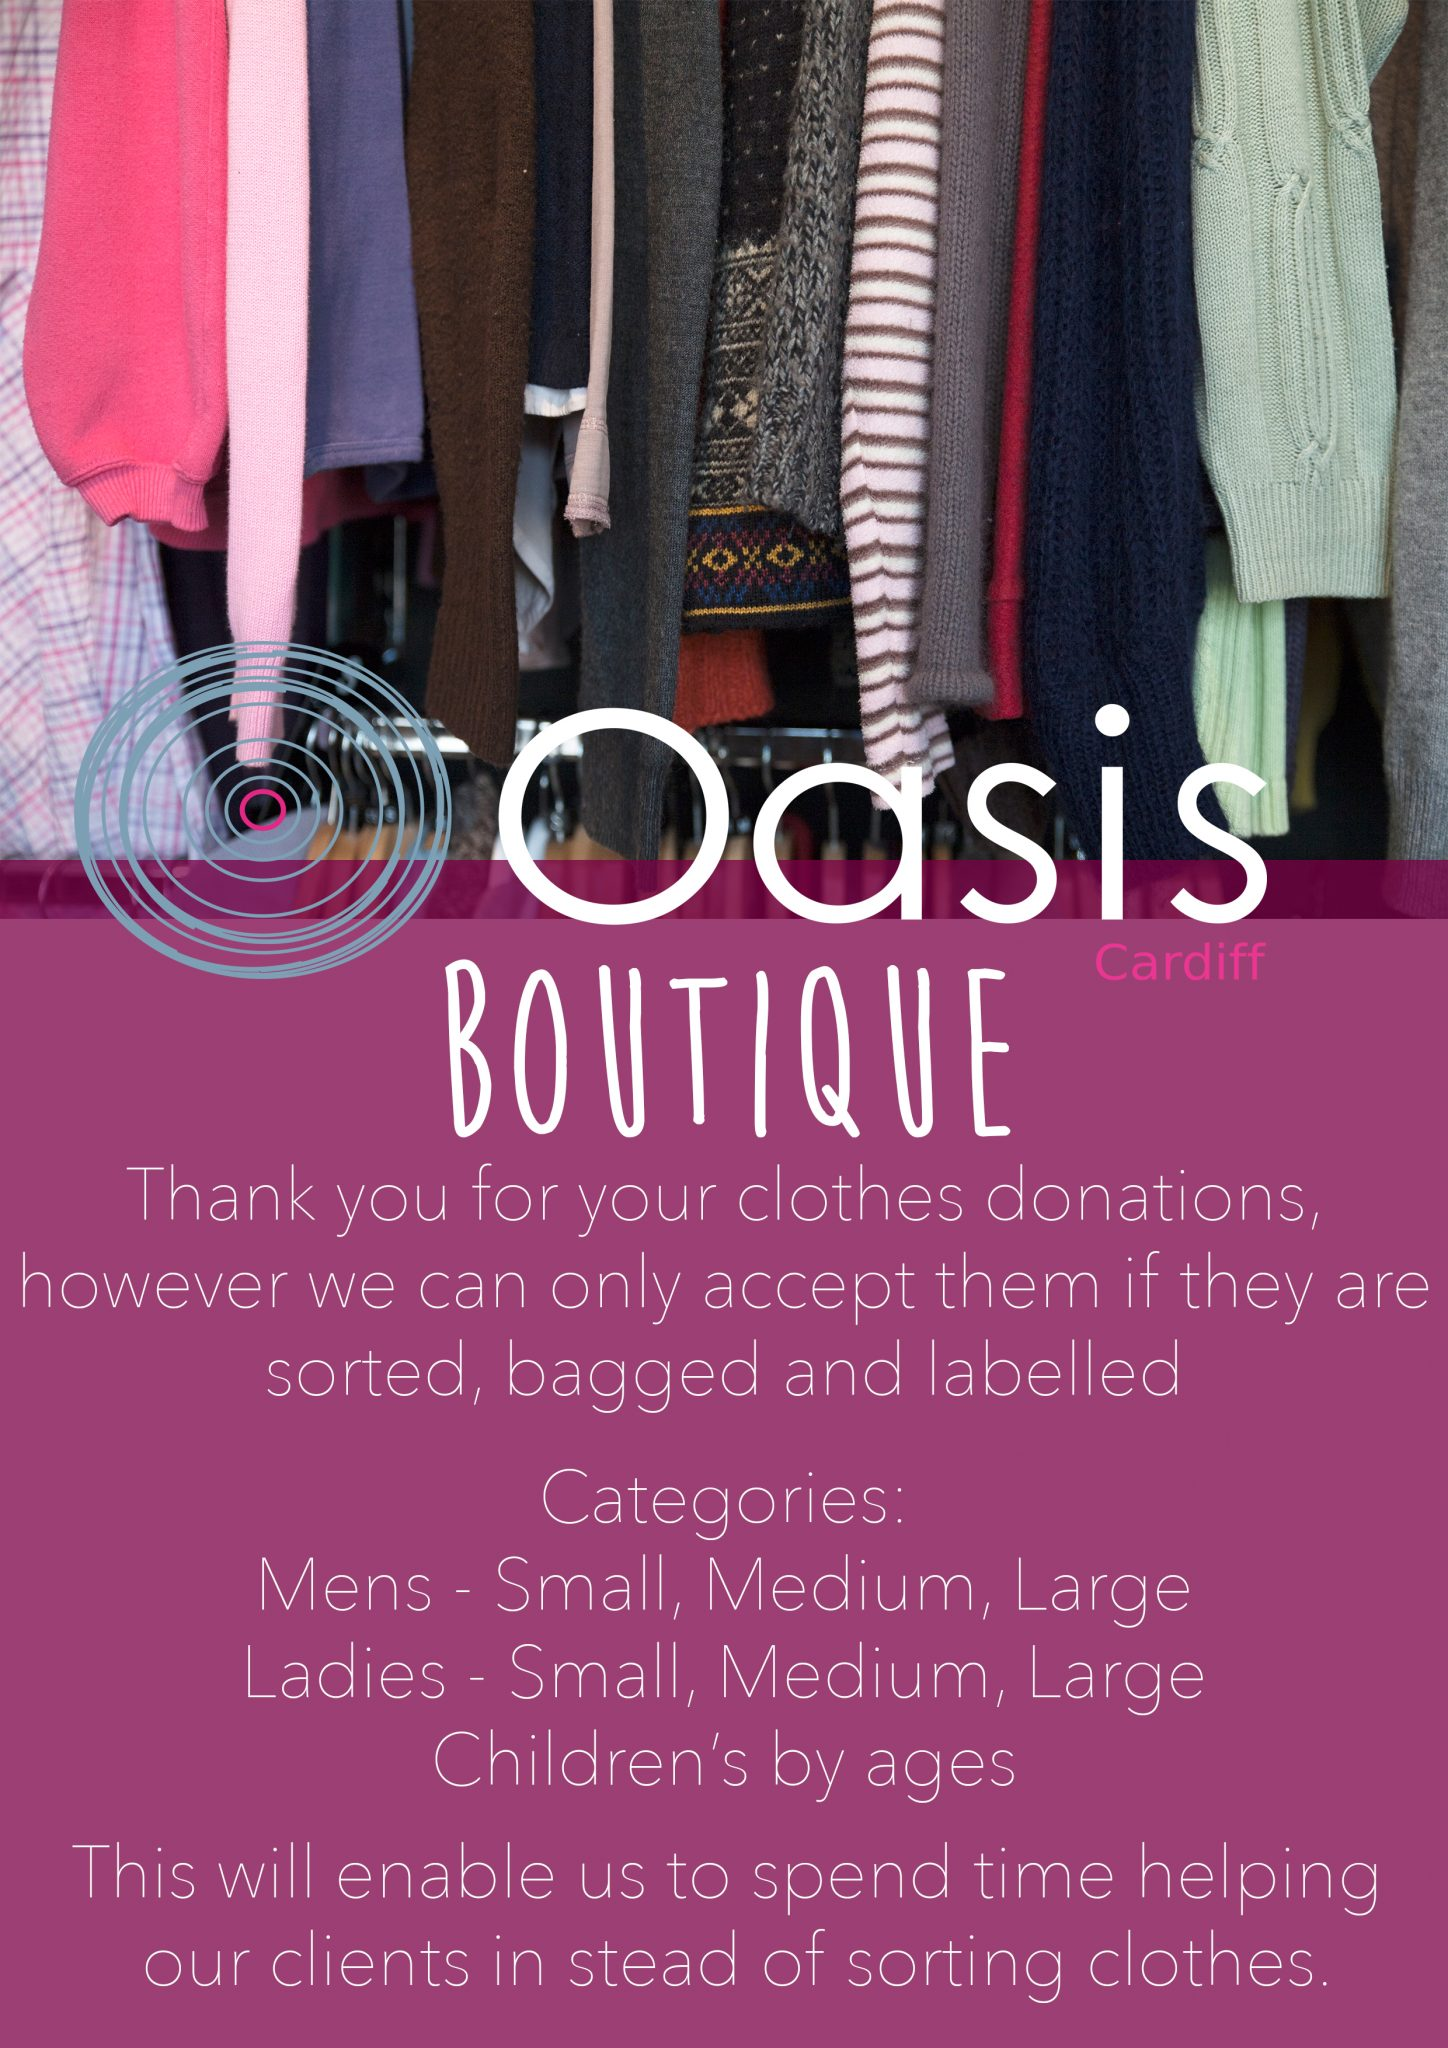 Boutique Donations